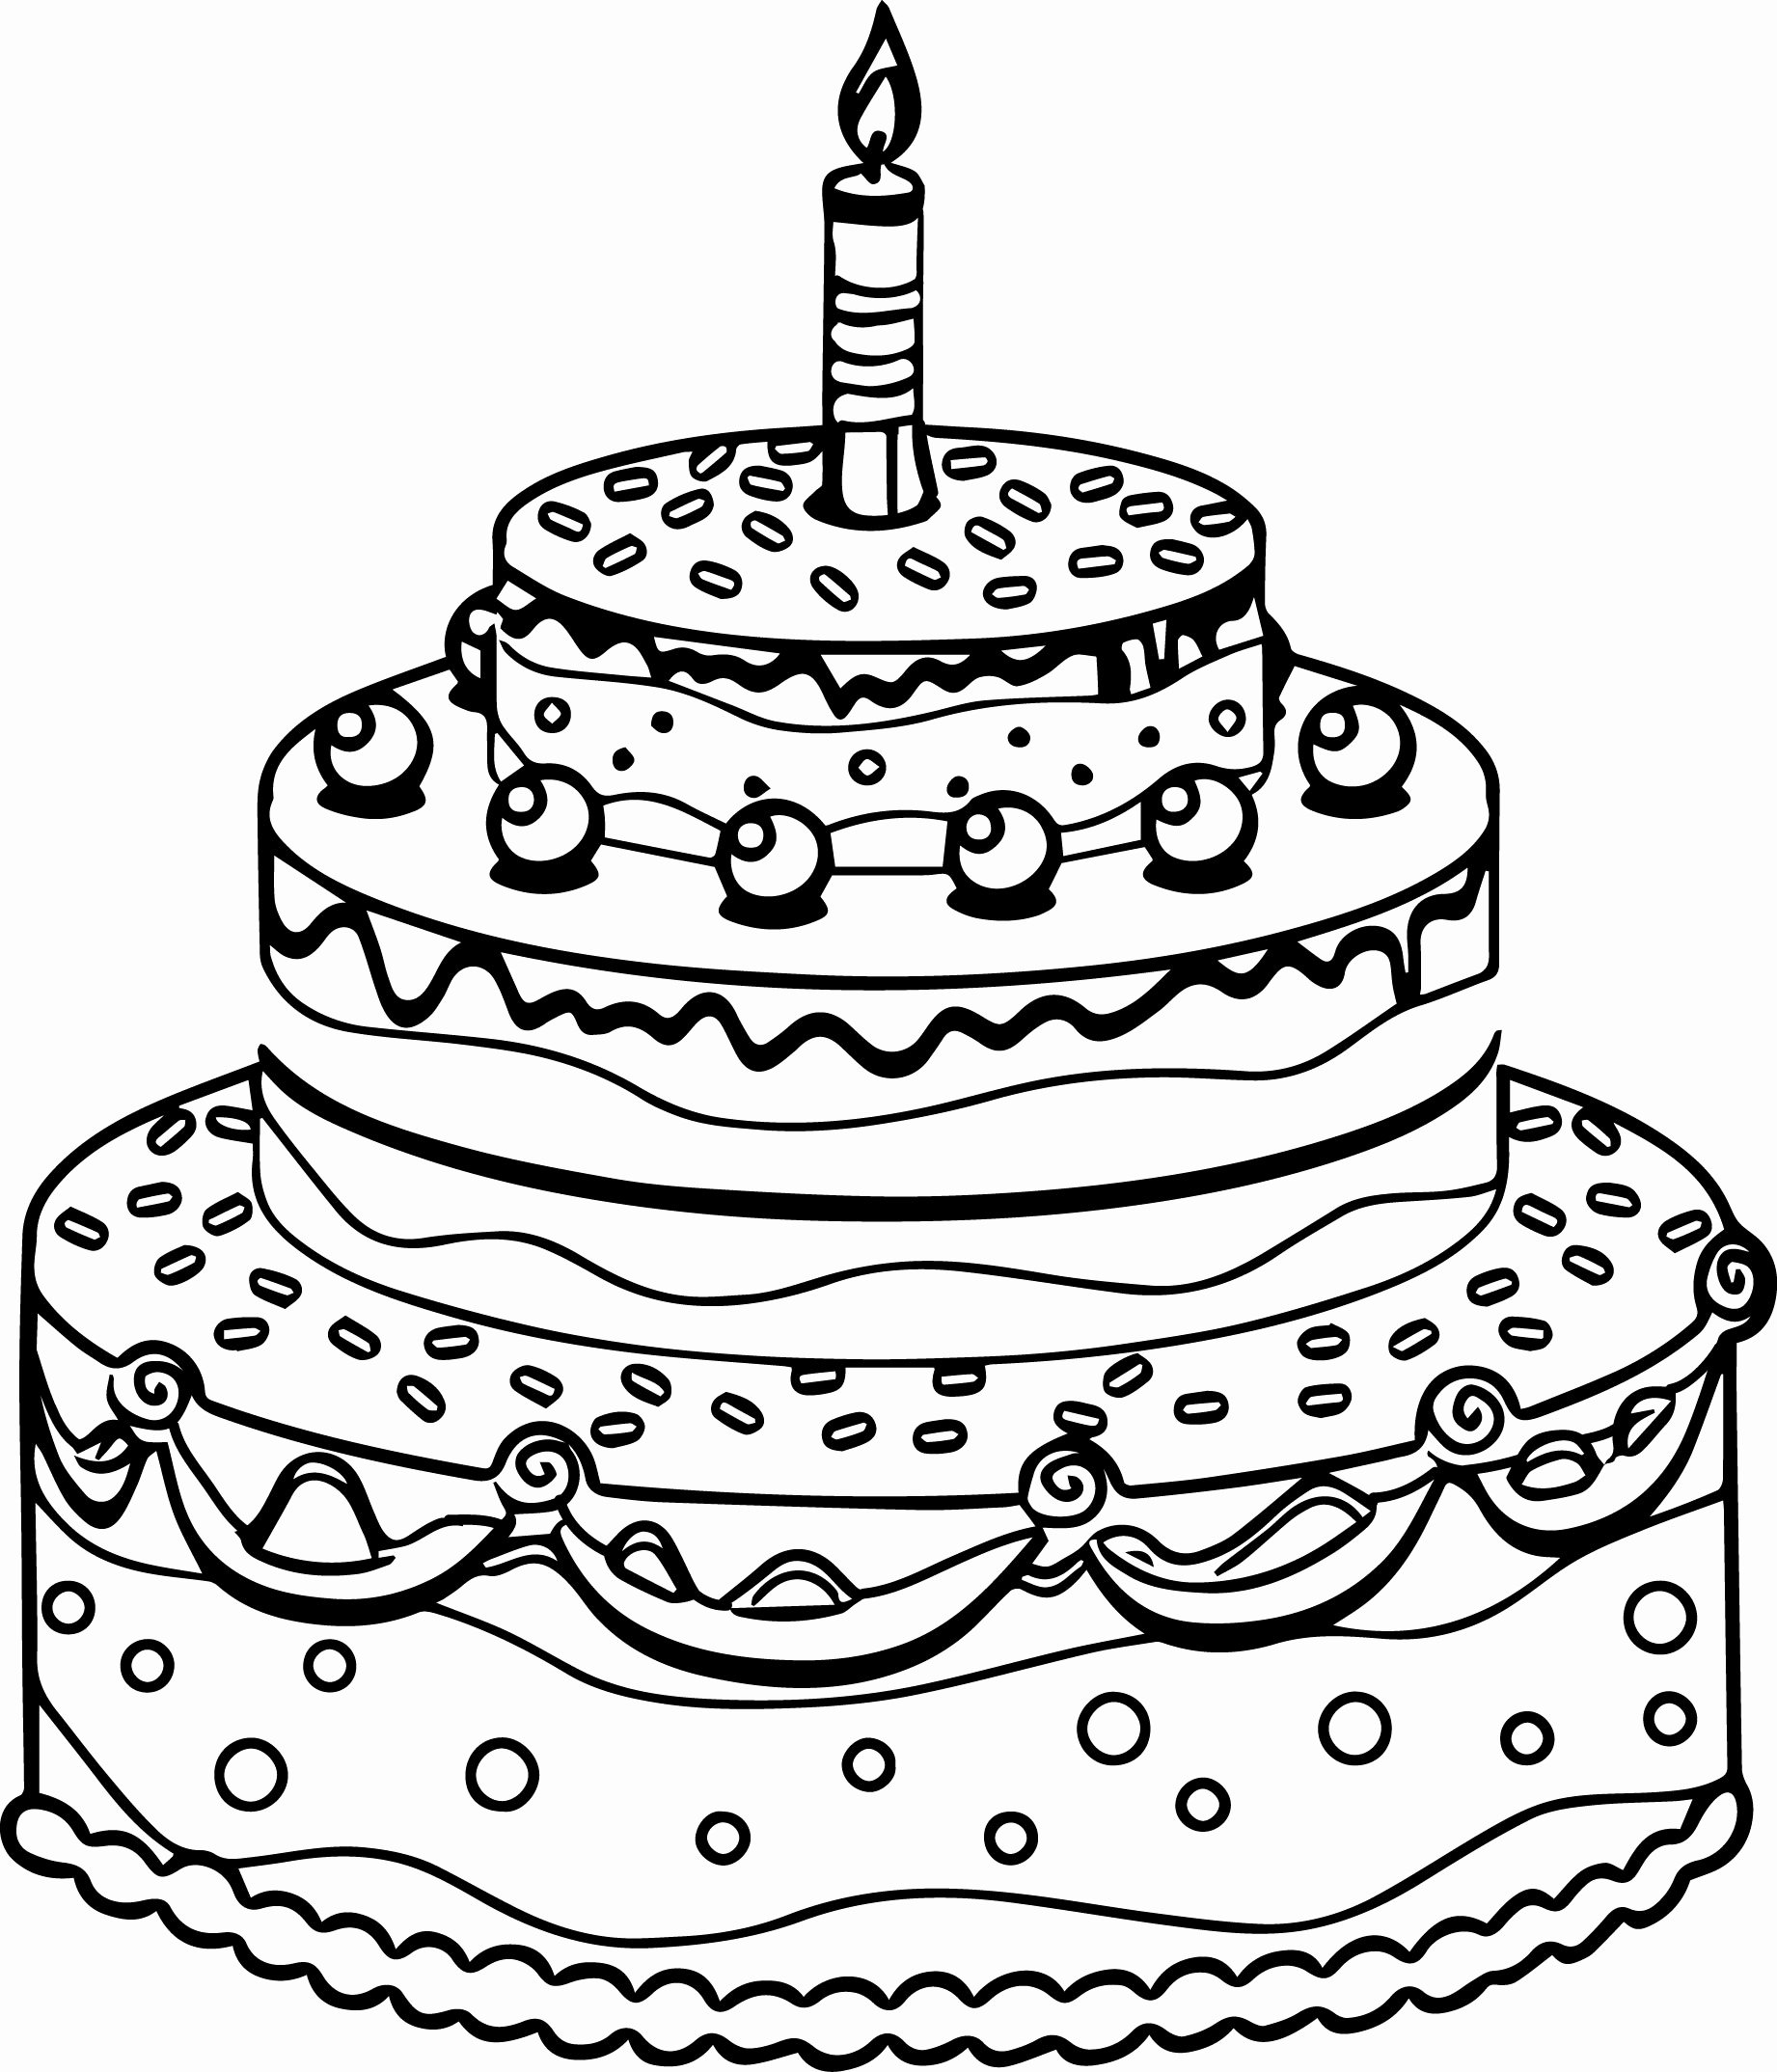 birthday cake coloring 20 free printable birthday cake coloring pages birthday cake coloring